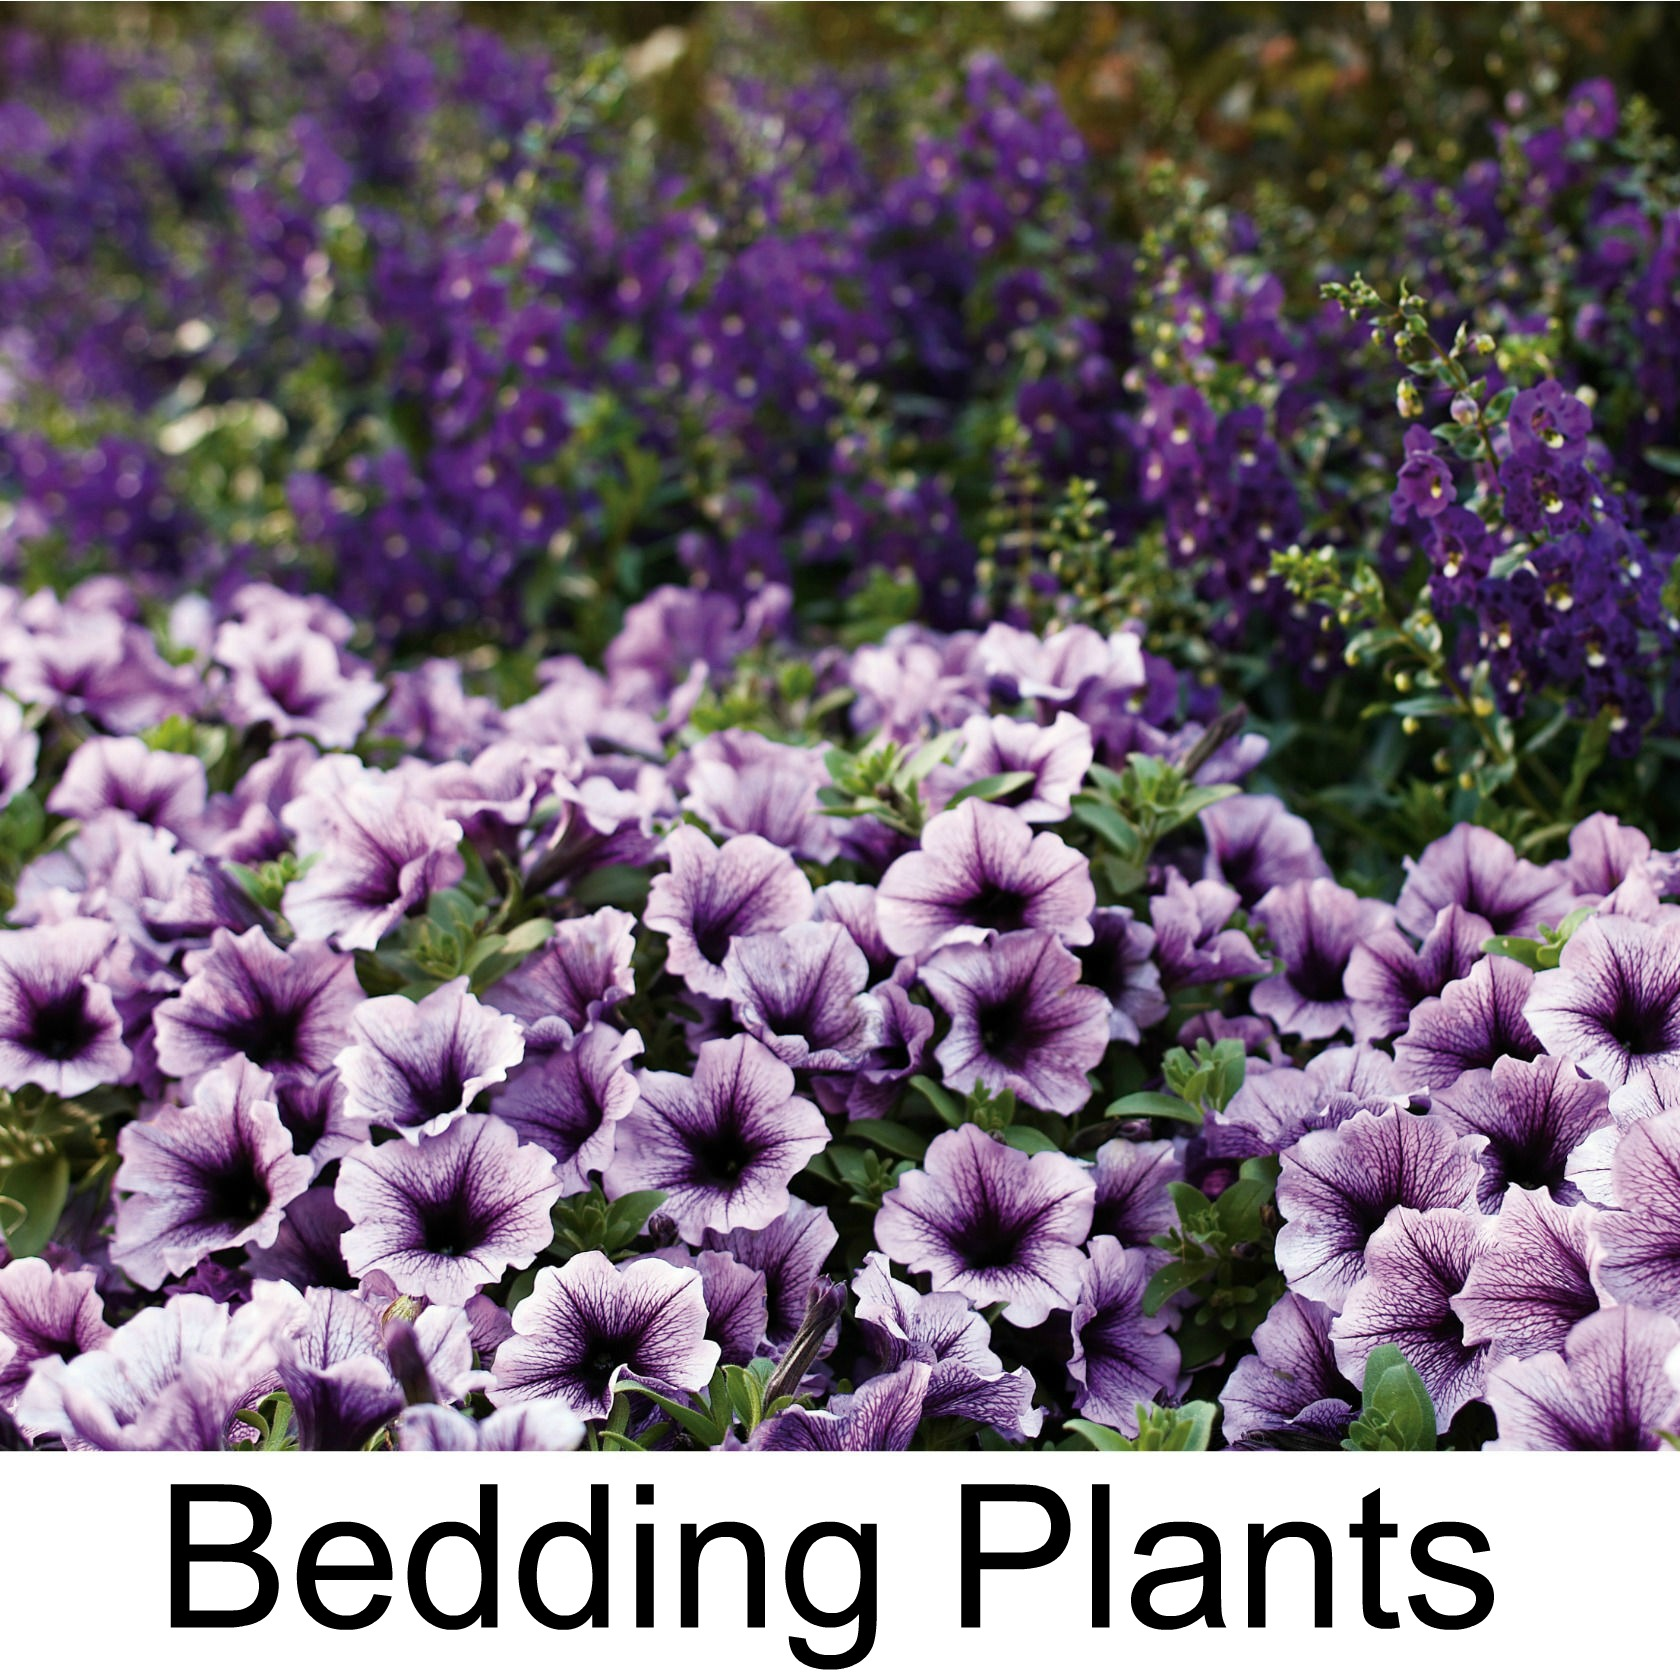 bedding plants3.jpg